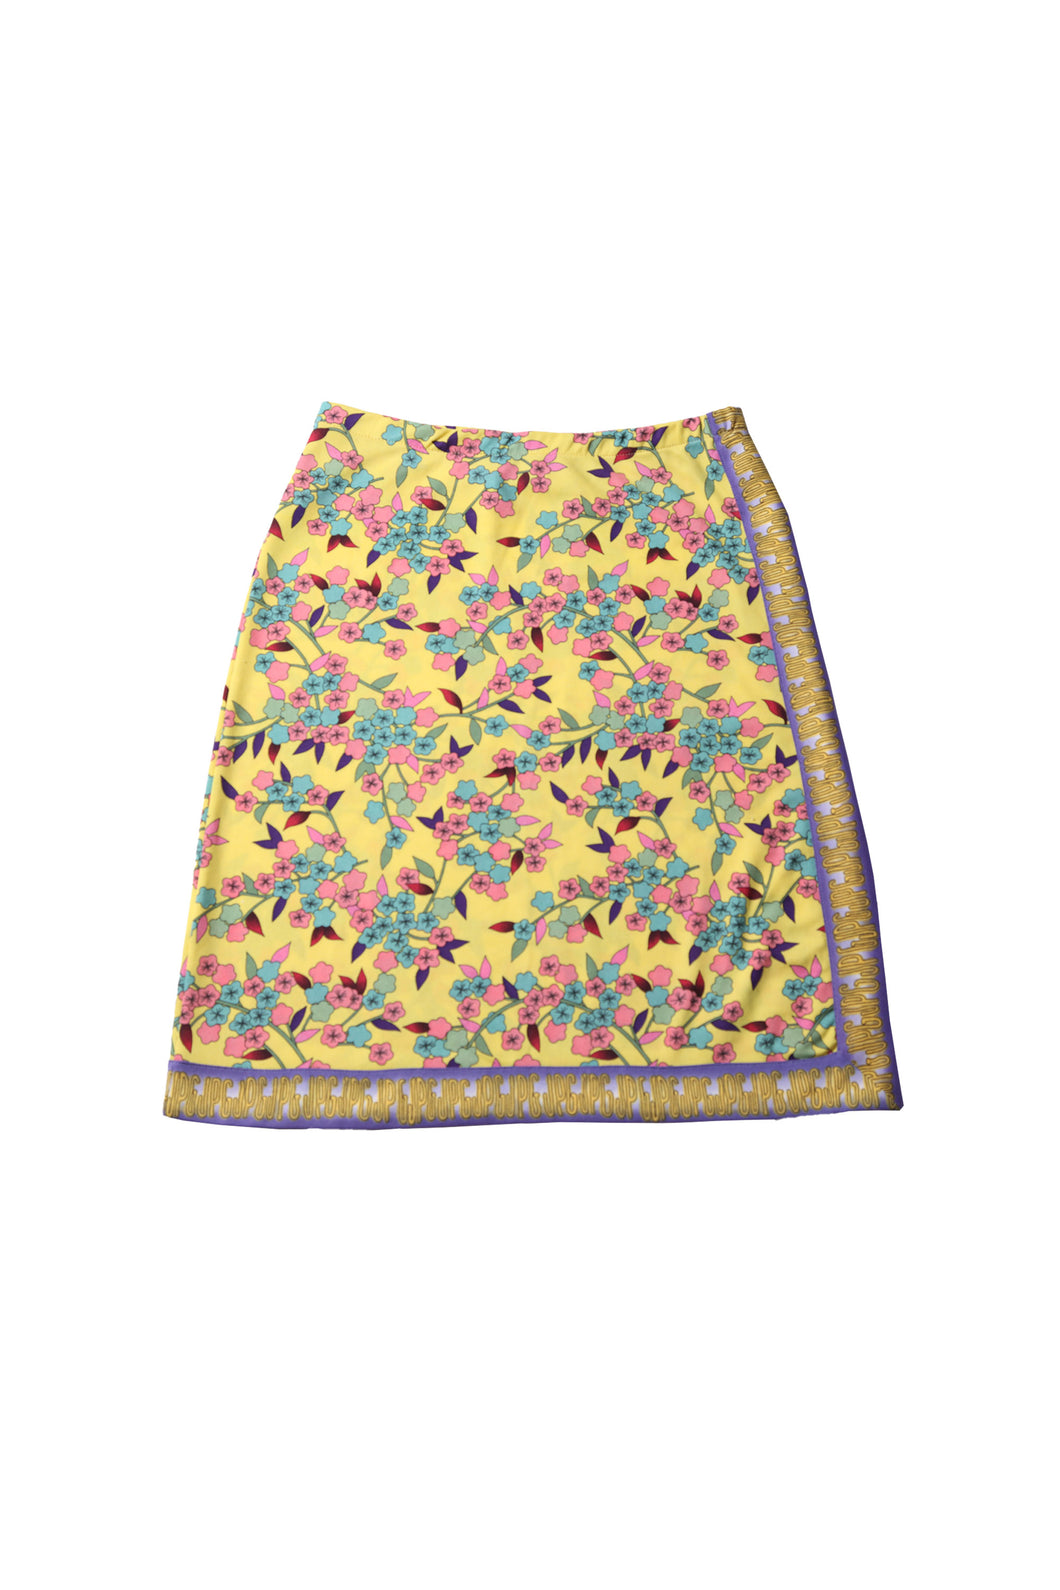 GAULTIER flower print skirt